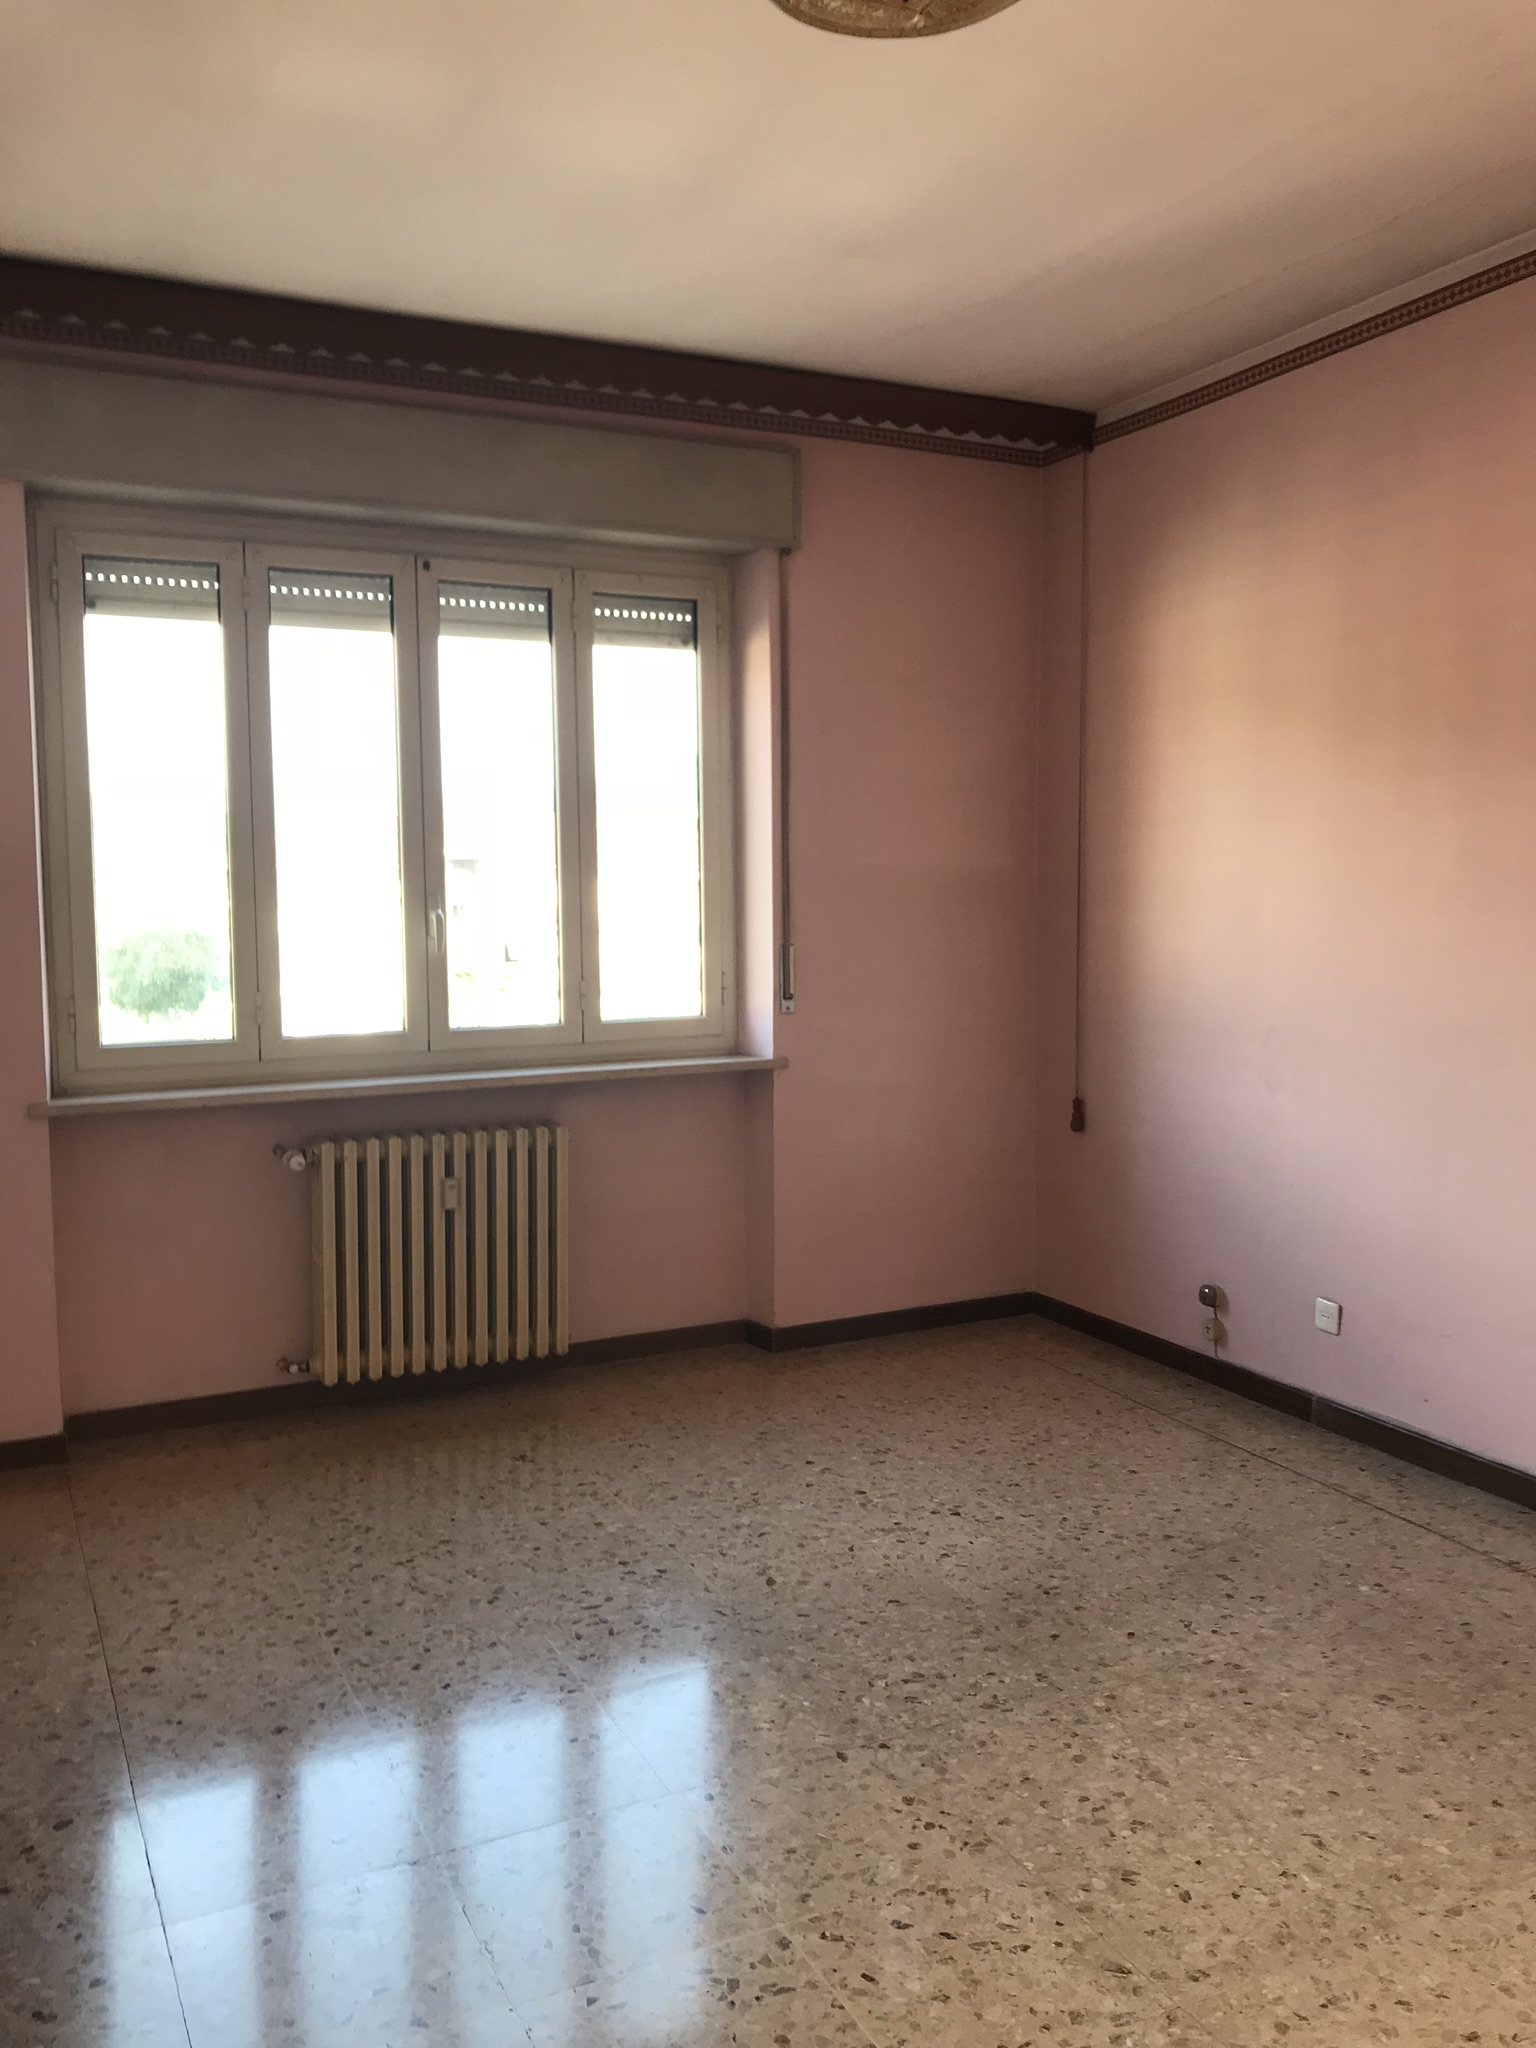 MONDOVI' ALTIPIANO FOUR-ROOM APARTMENT WITH GARAGE